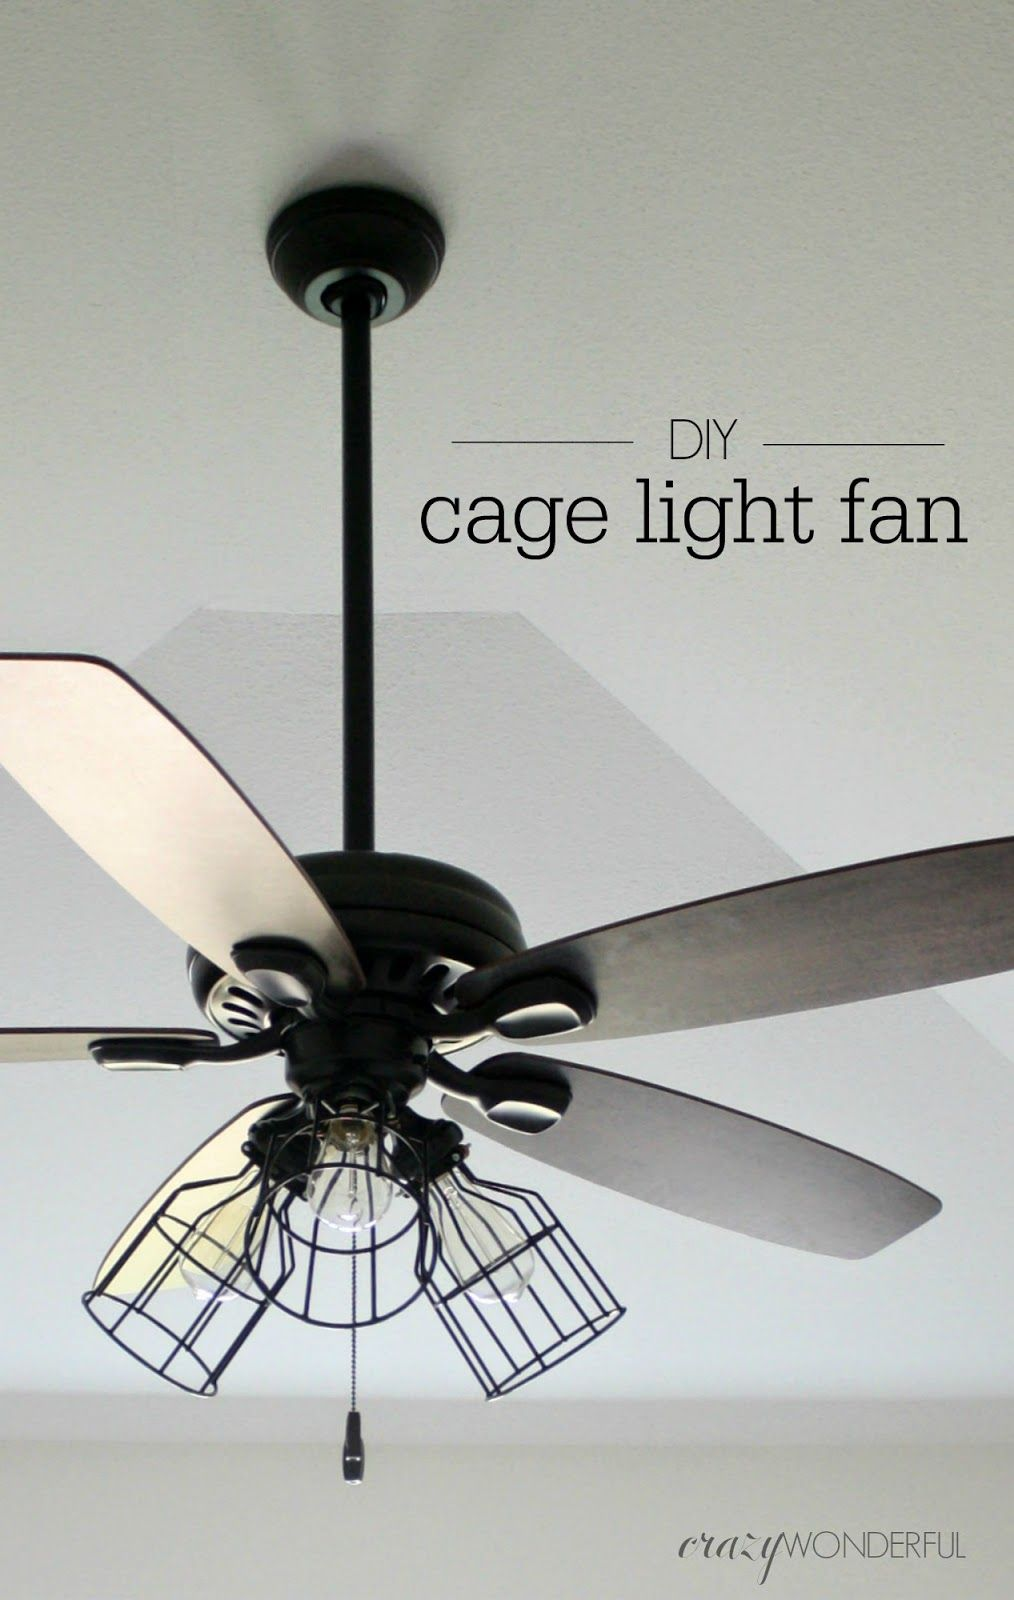 industrial iron ceiling ceilings fan with of light fans products shades cage